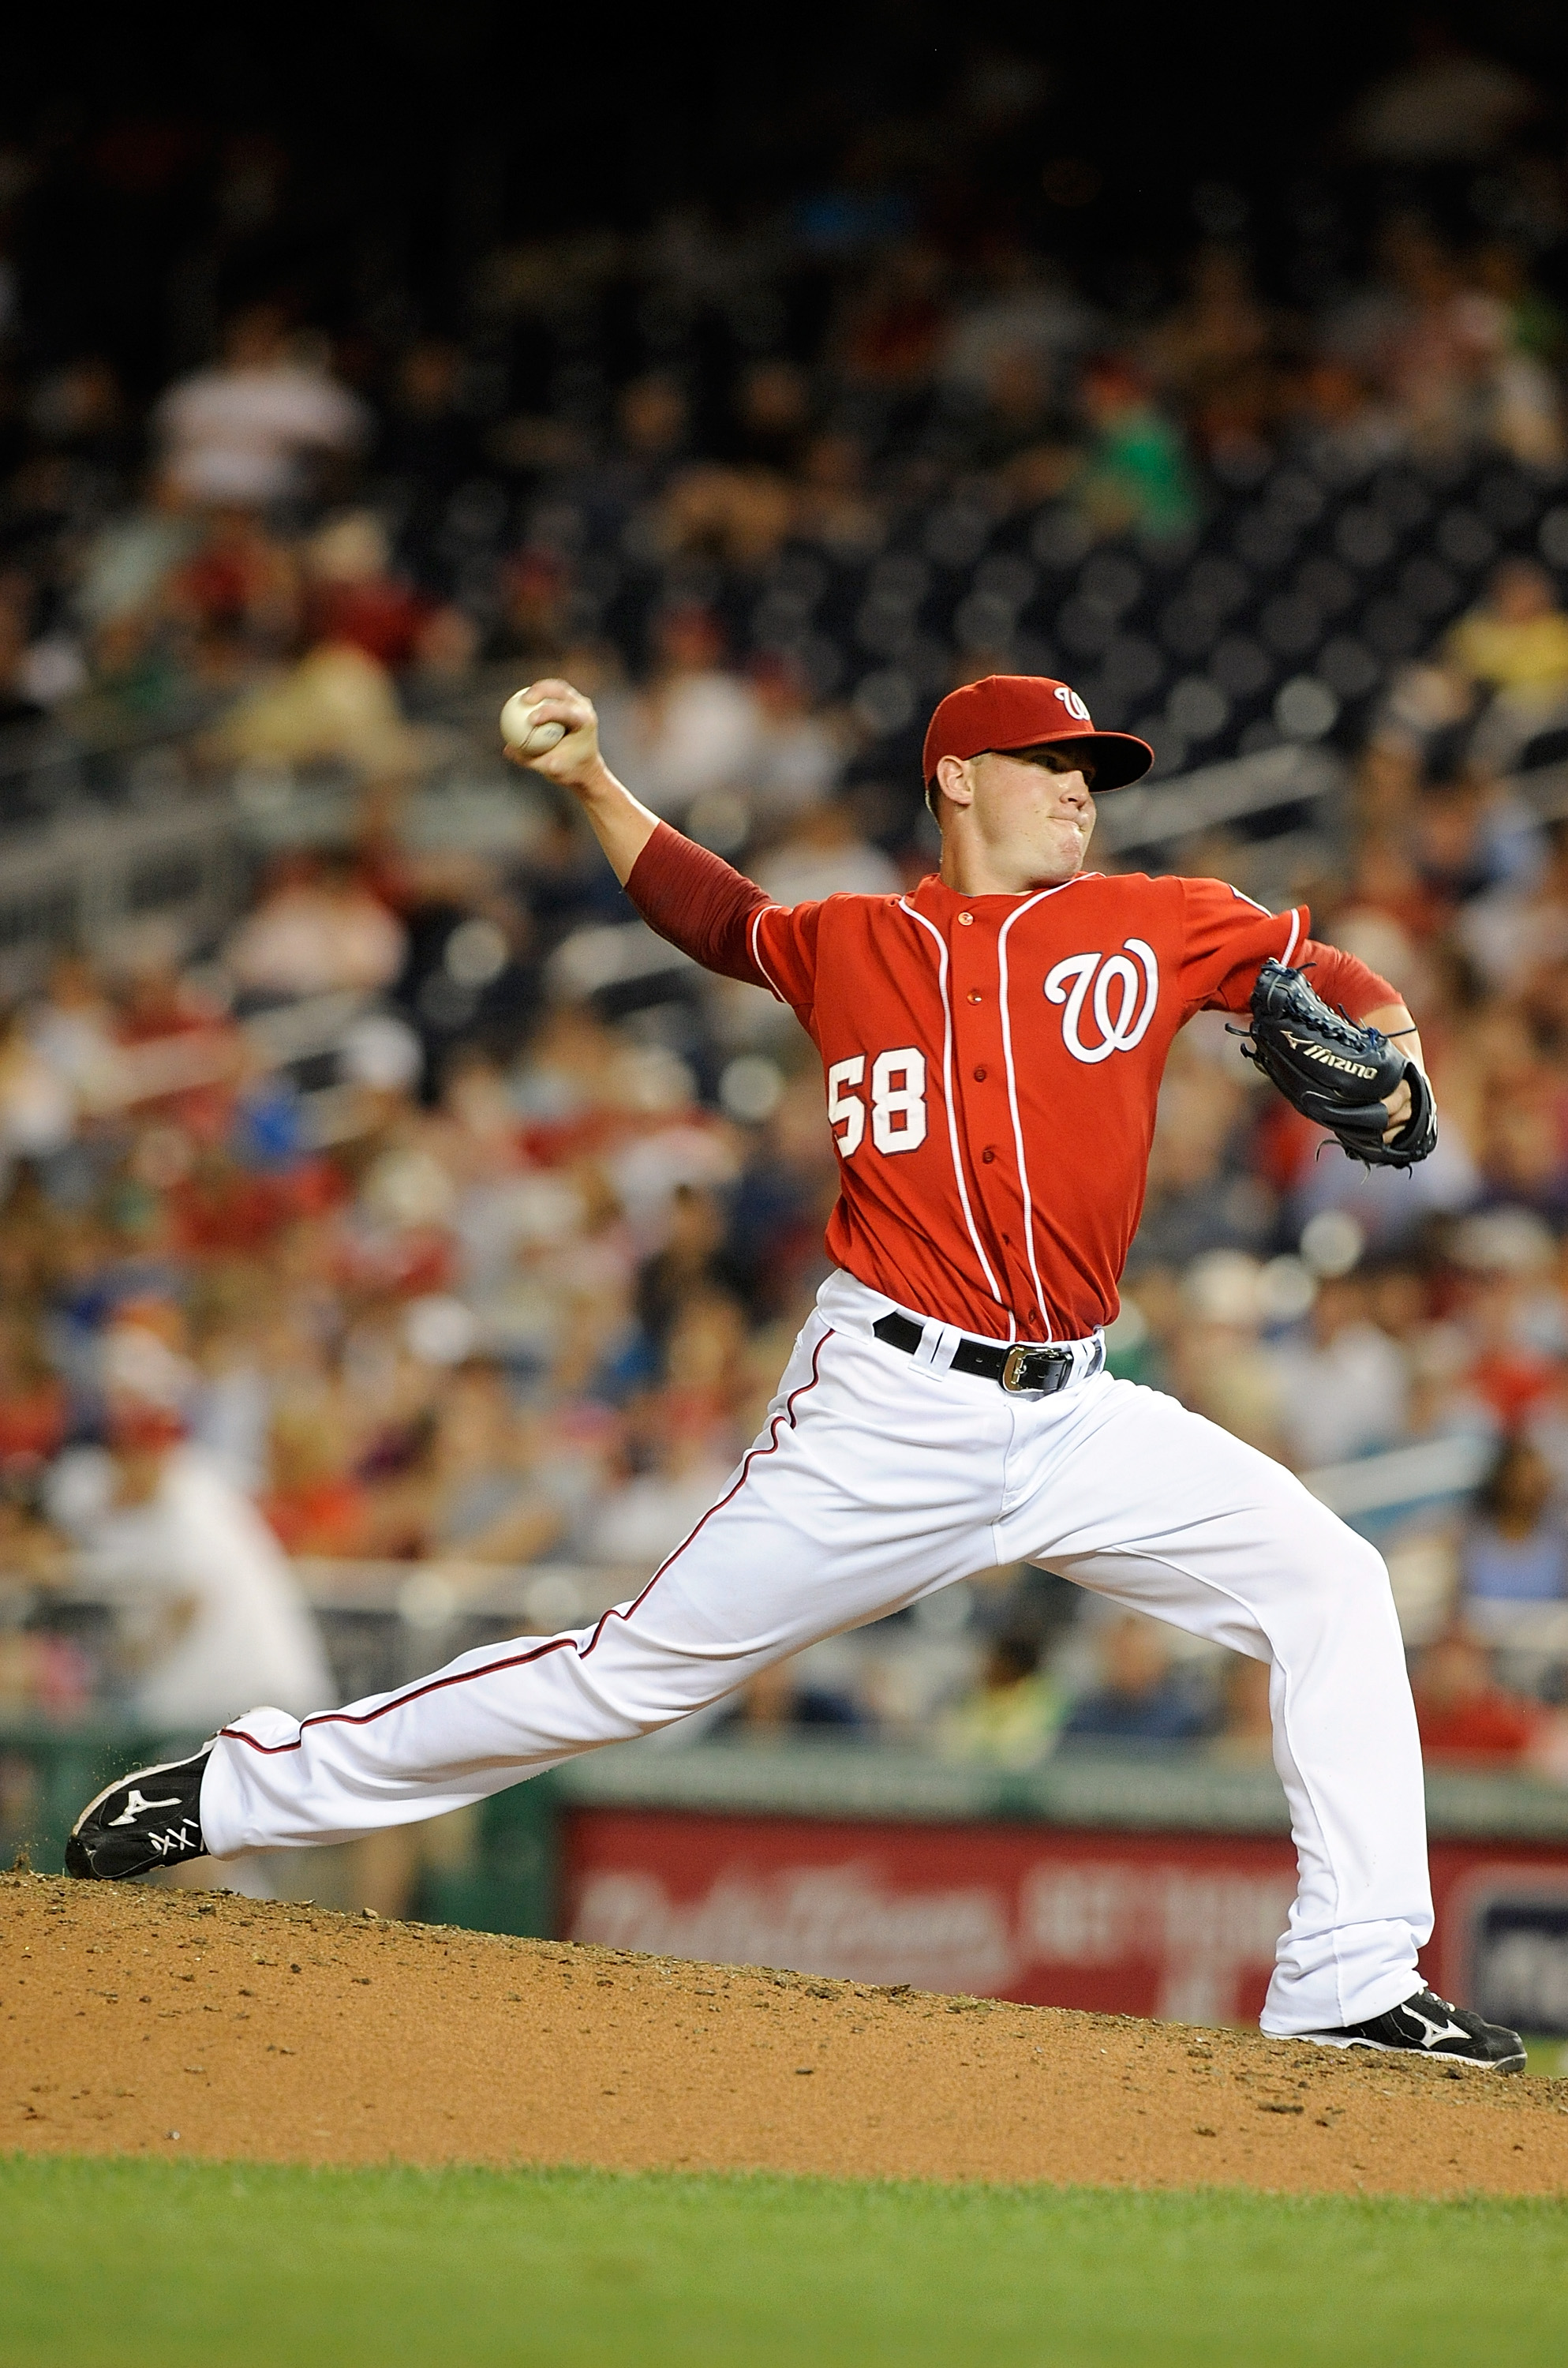 WASHINGTON - JULY 09:  Drew Storen #58 of the Washington Nationals pitches against the San Francisco Giants at Nationals Park on July 9, 2010 in Washington, DC.  (Photo by Greg Fiume/Getty Images)